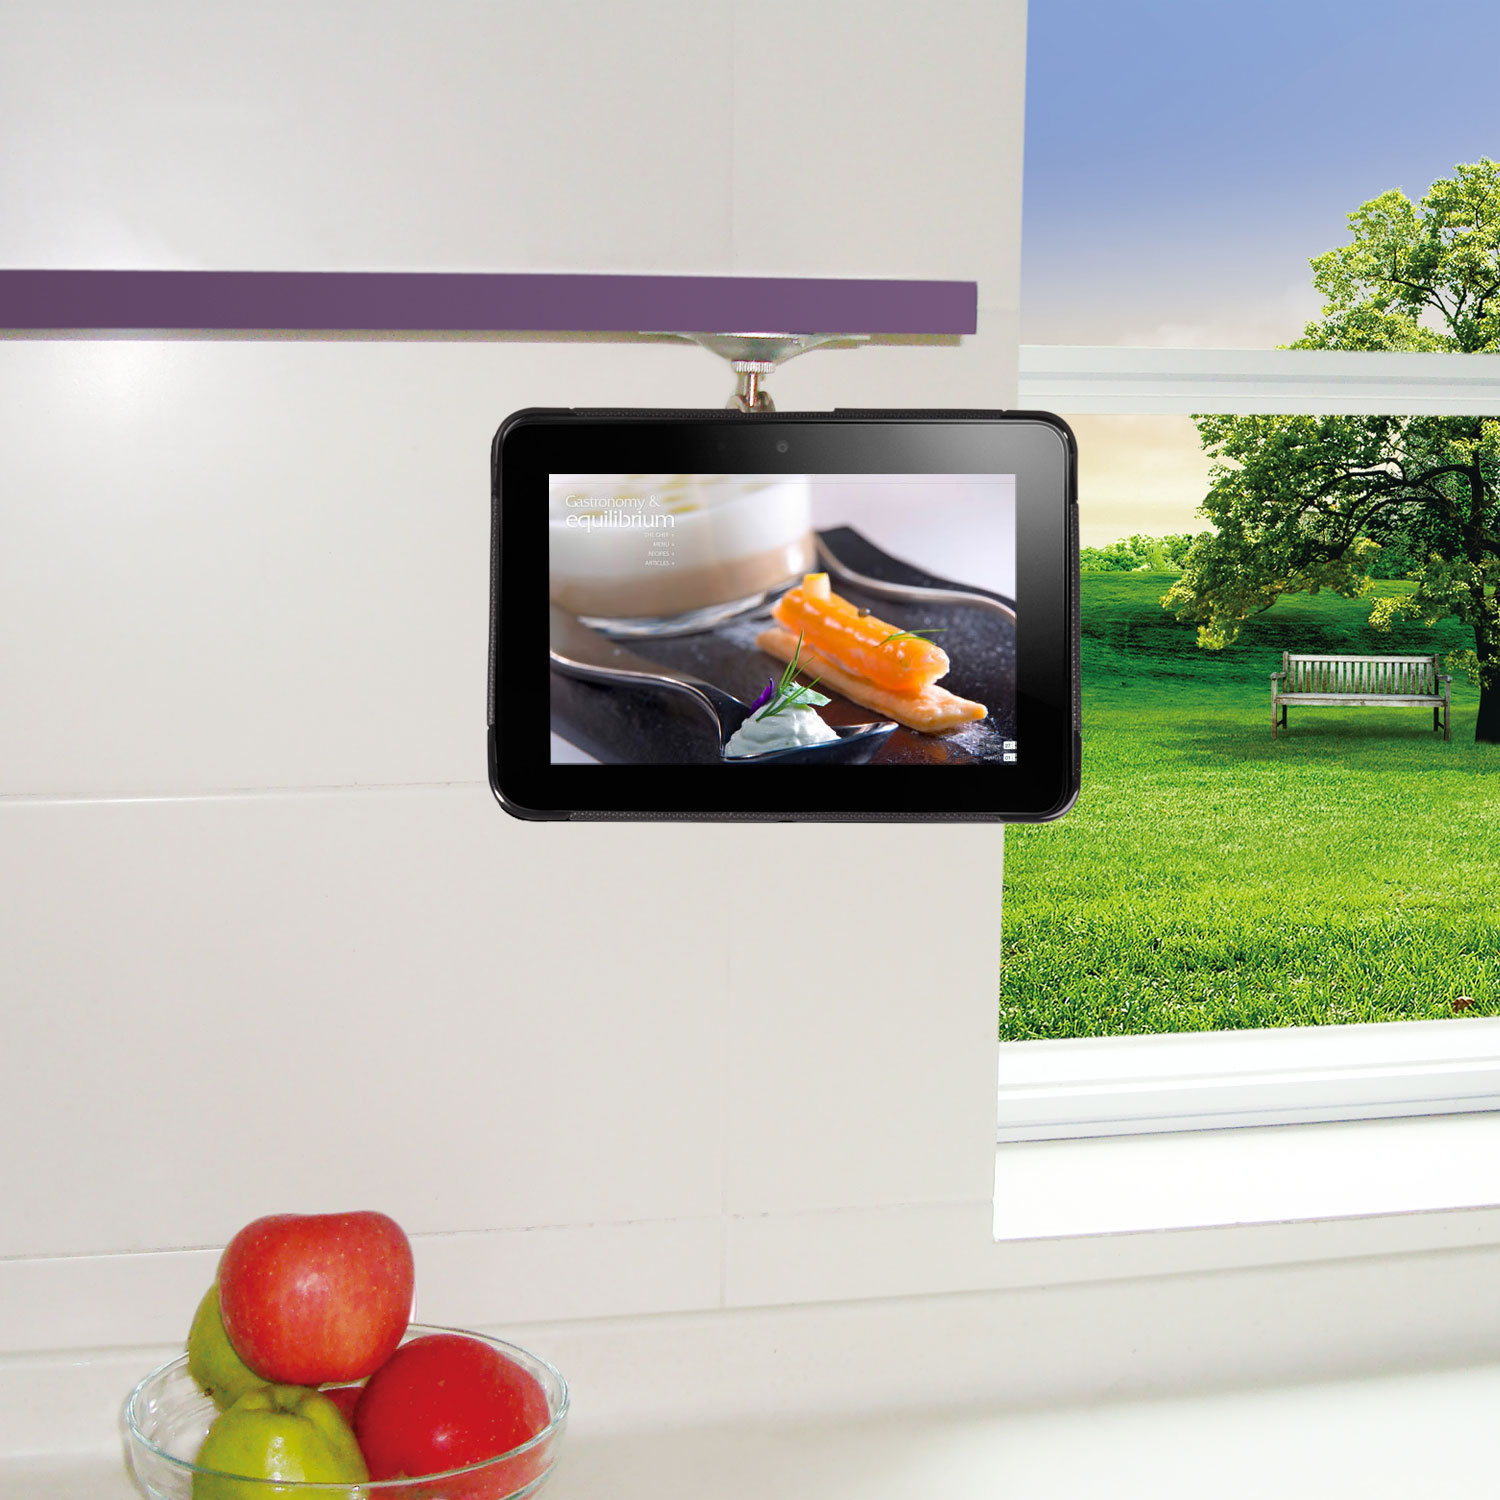 TFY Adjustable Kitchen Shelf Cabinet Mount for Amazon Kindle Fire HD